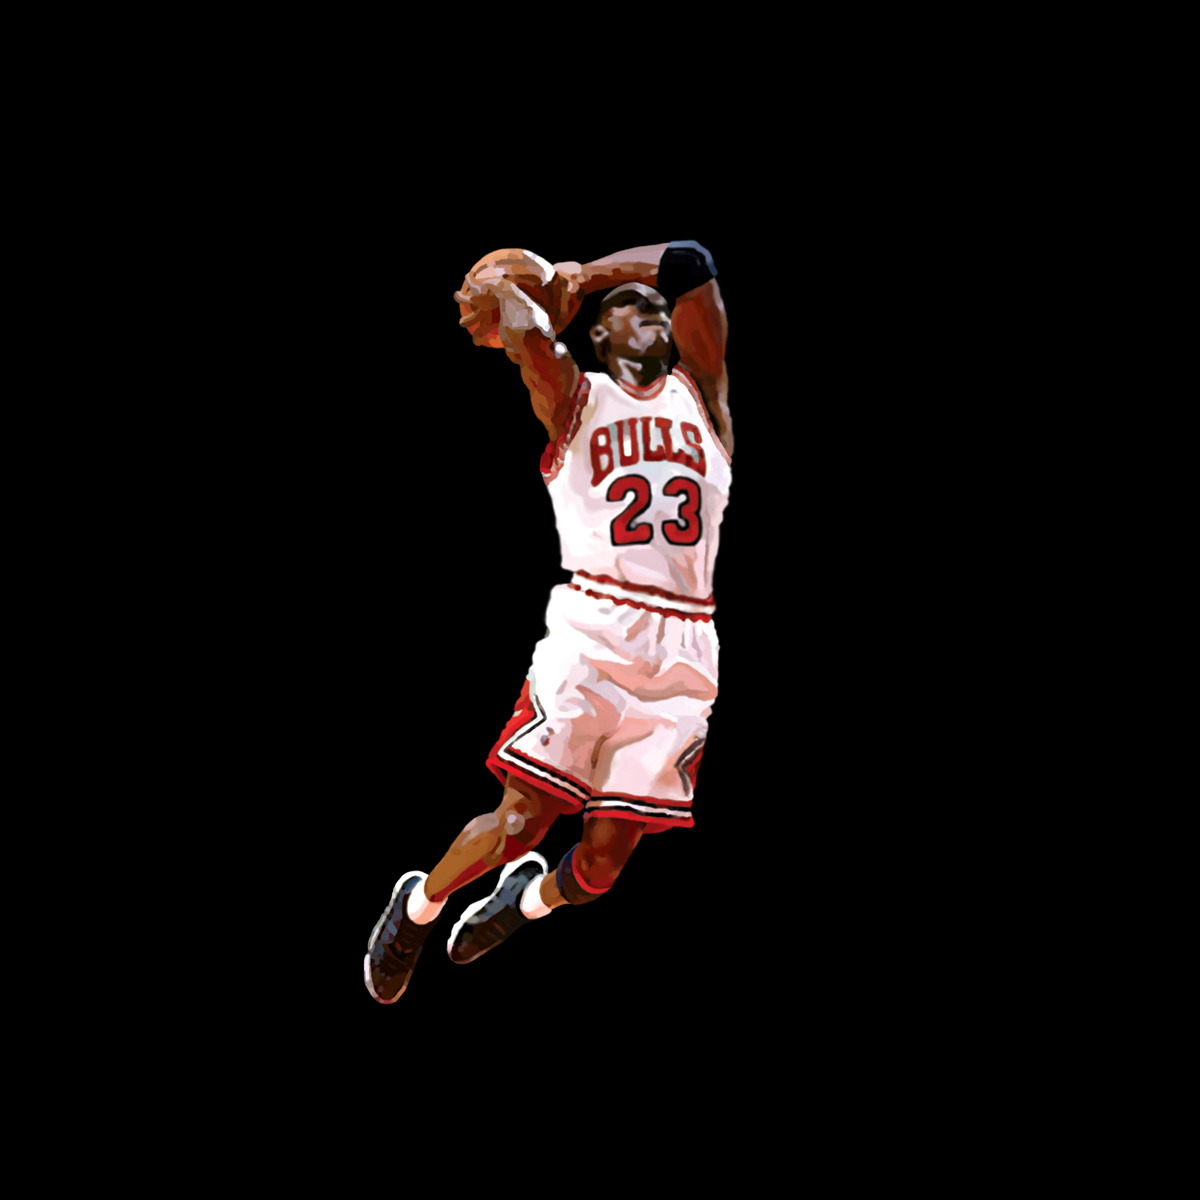 Michael Jordan Digital Painting | Purchase: Wall Art